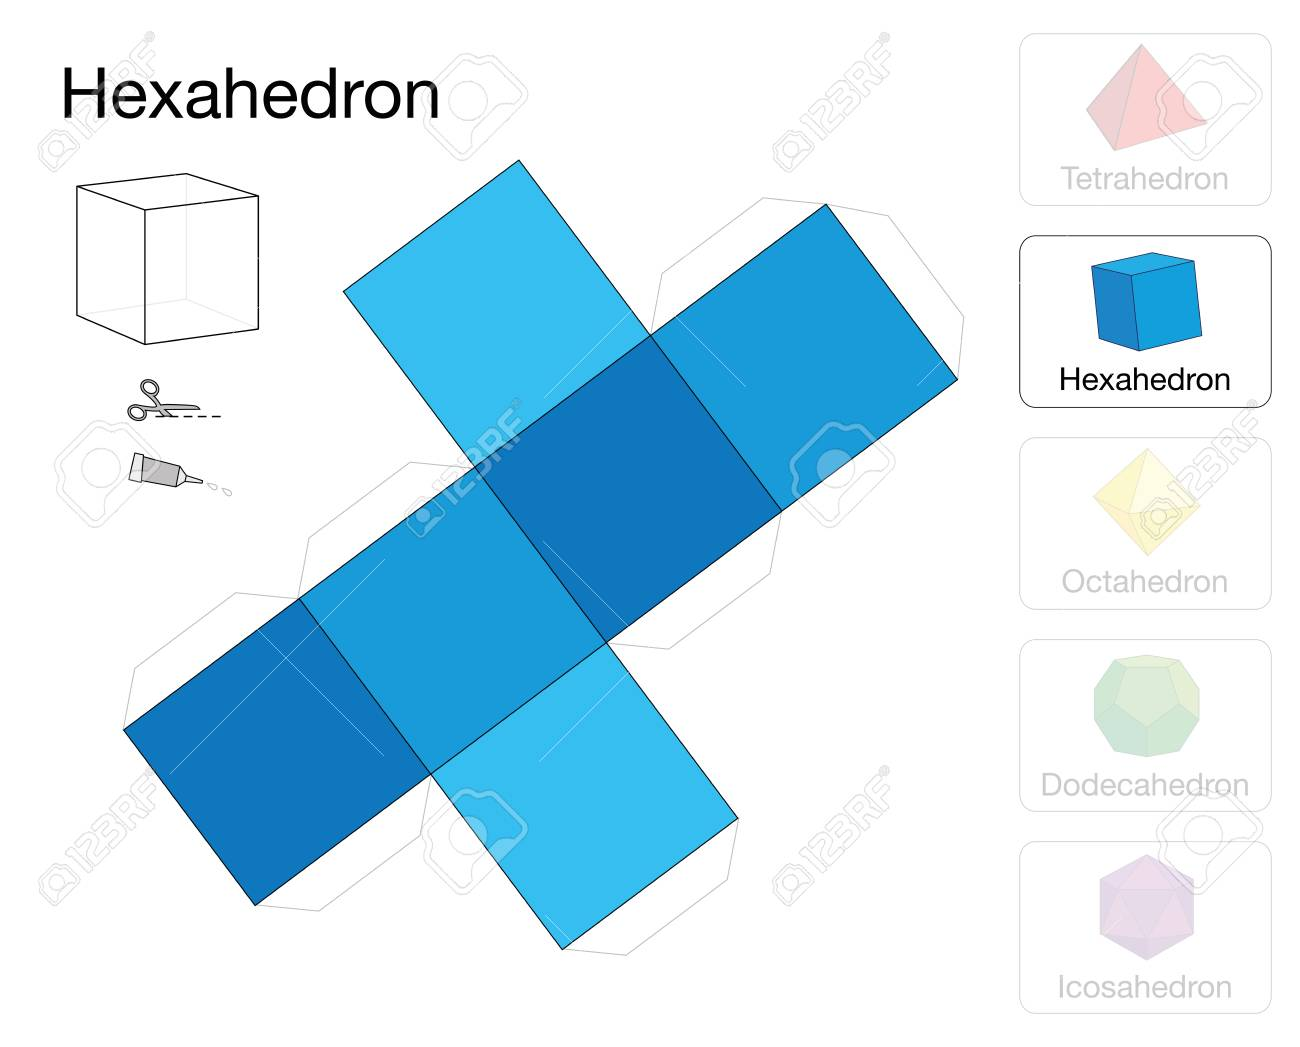 Hexahedron Platonic Solid Template. Paper Model Of A Cube, One ...